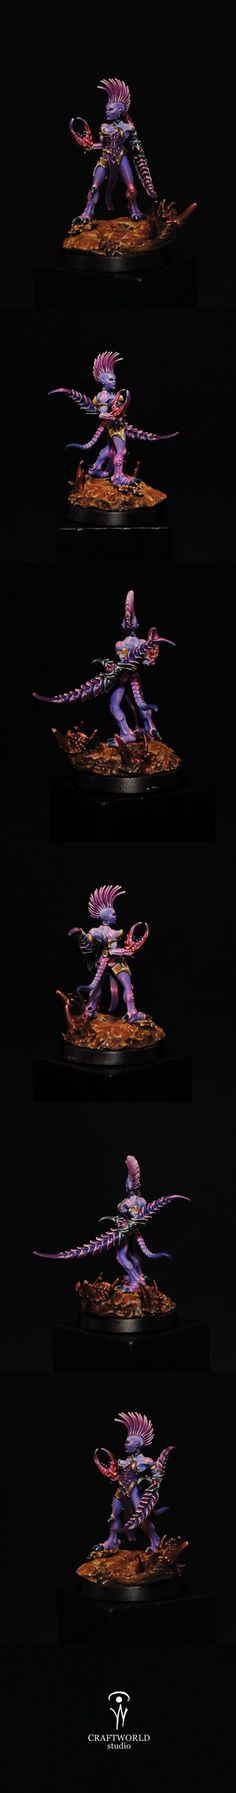 Deamonette of Slaanesh - ZlaMacka